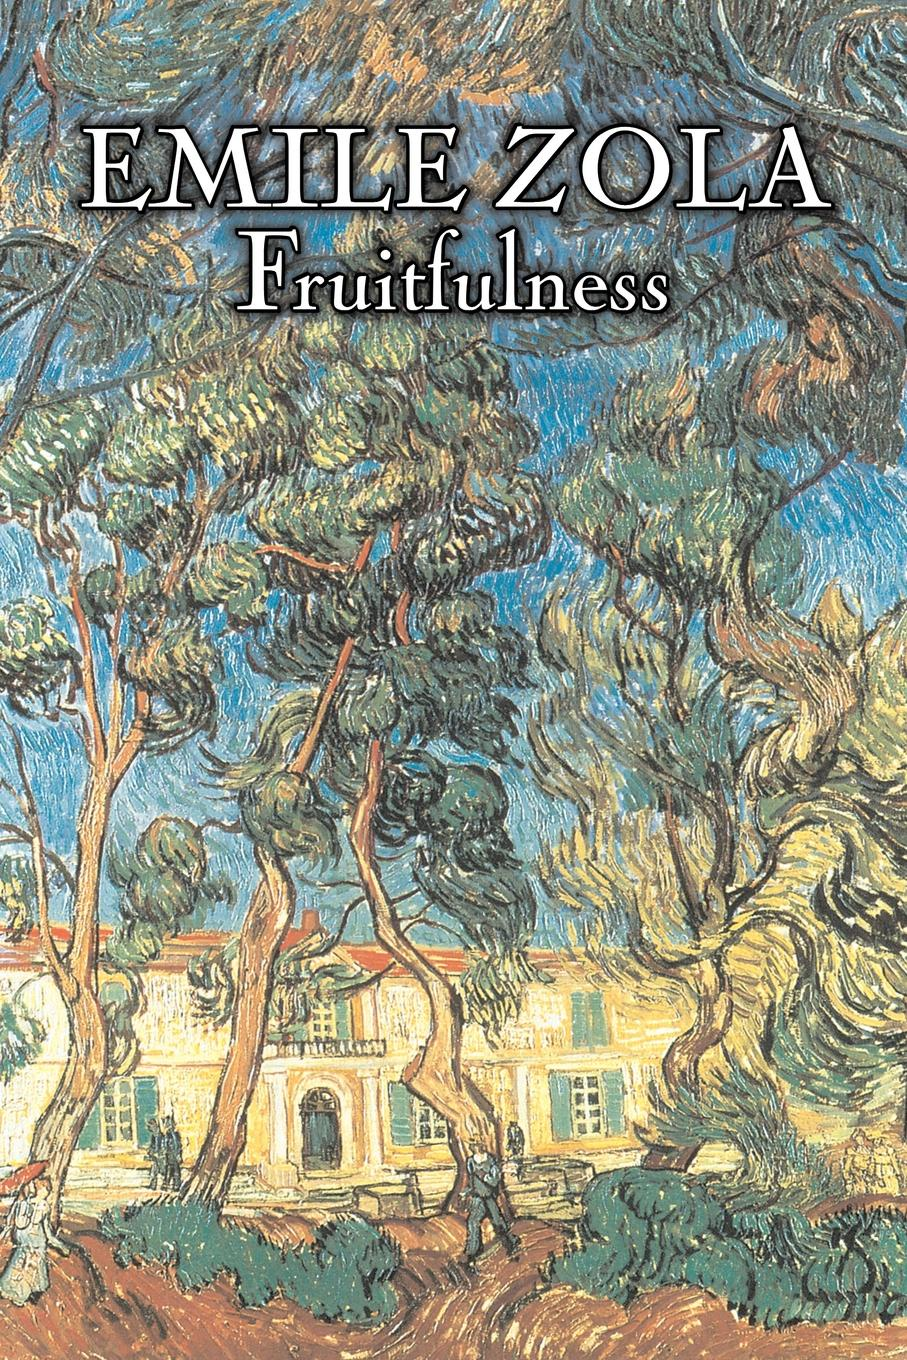 Emile Zola, Ernest Alfred Vizetelly Fruitfulness by Emile Zola, Fiction, Classics, Literary lisa jardine the awful end of prince william the silent the first assassination of a head of state with a hand gun